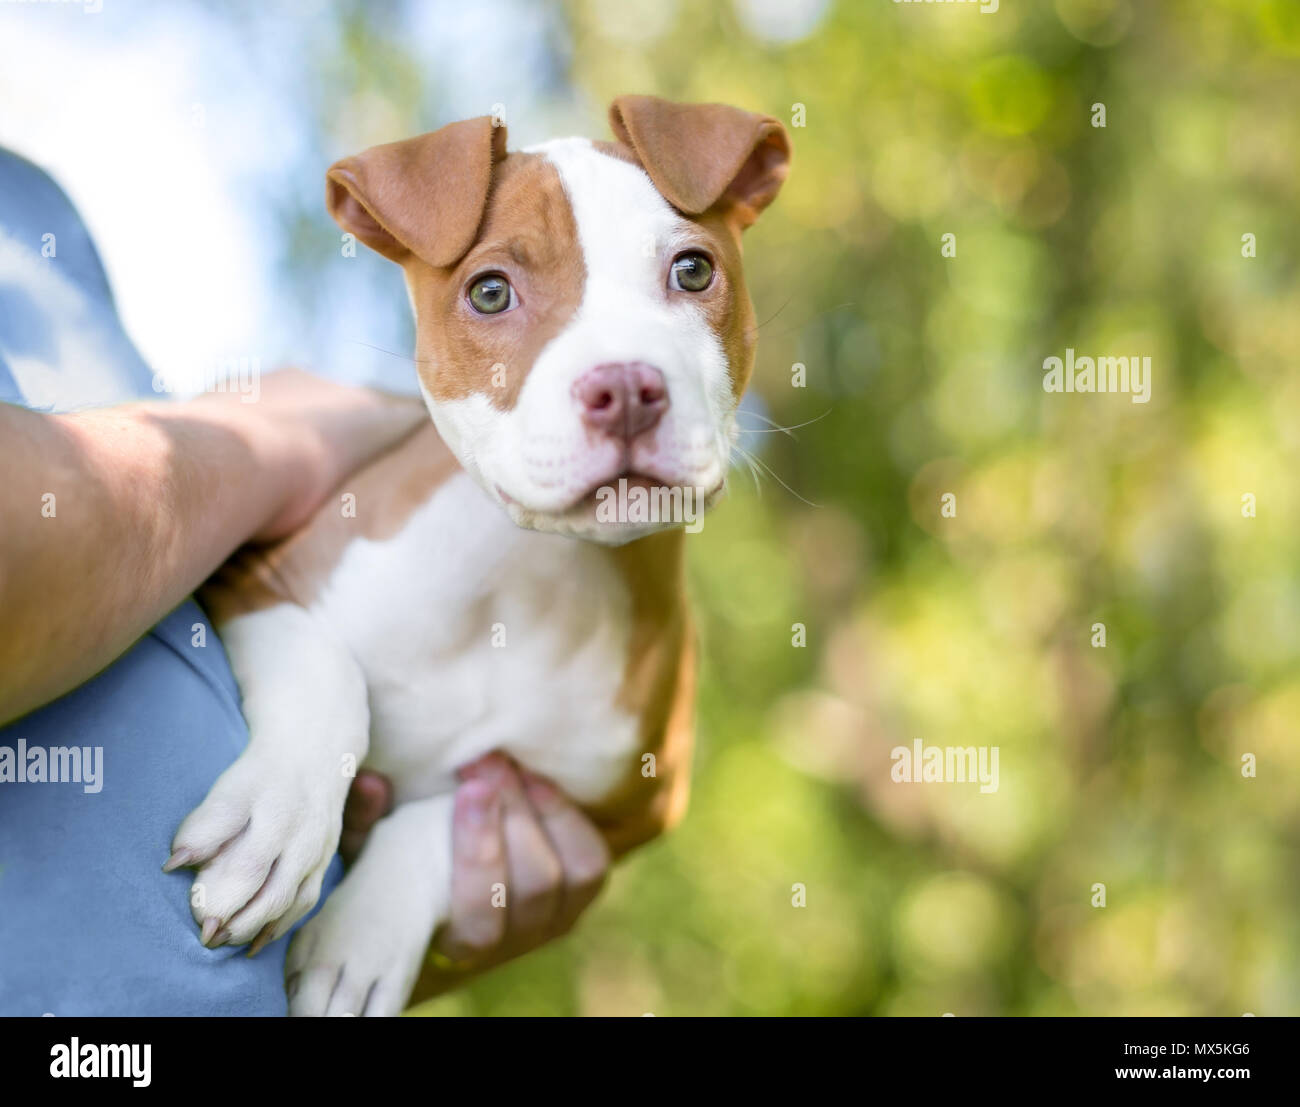 A cute red and white Pit Bull Terrier mixed breed puppy in the arms of its owner - Stock Image